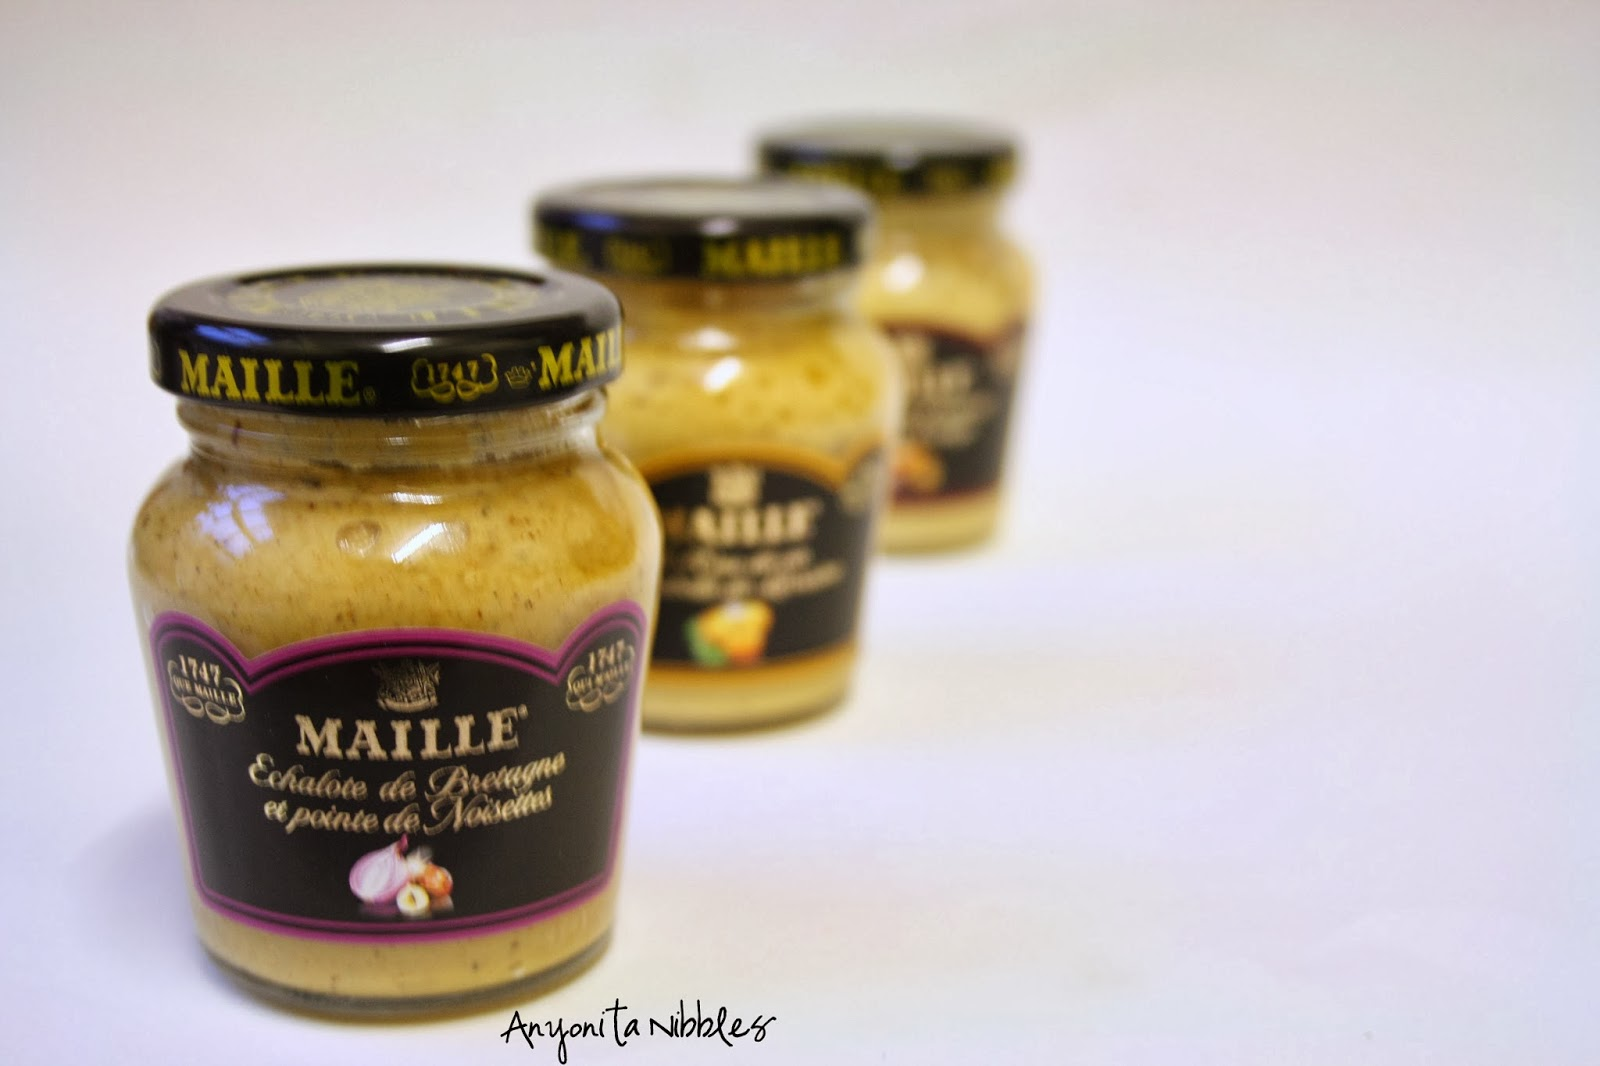 Maille's Mustard with Brittany Shallots and Hazelnuts from www.anyonita-nibbles.com